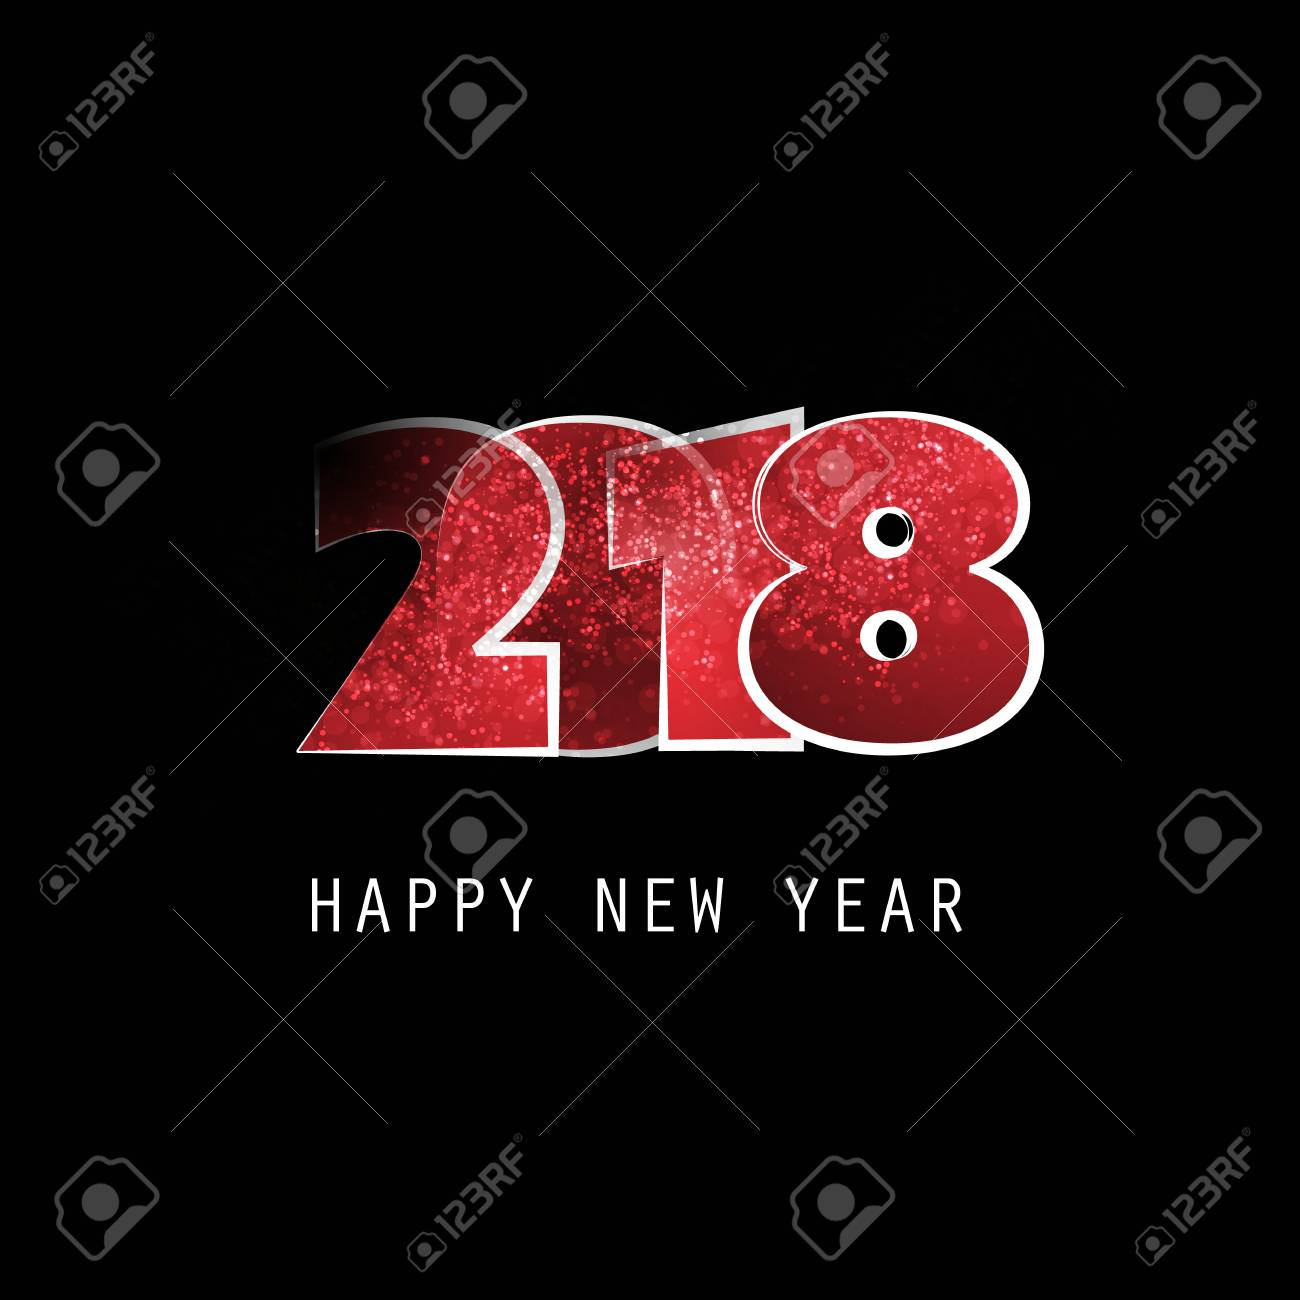 Best wishes abstract modern style happy new year greeting card best wishes abstract modern style happy new year greeting card or background creative design kristyandbryce Image collections